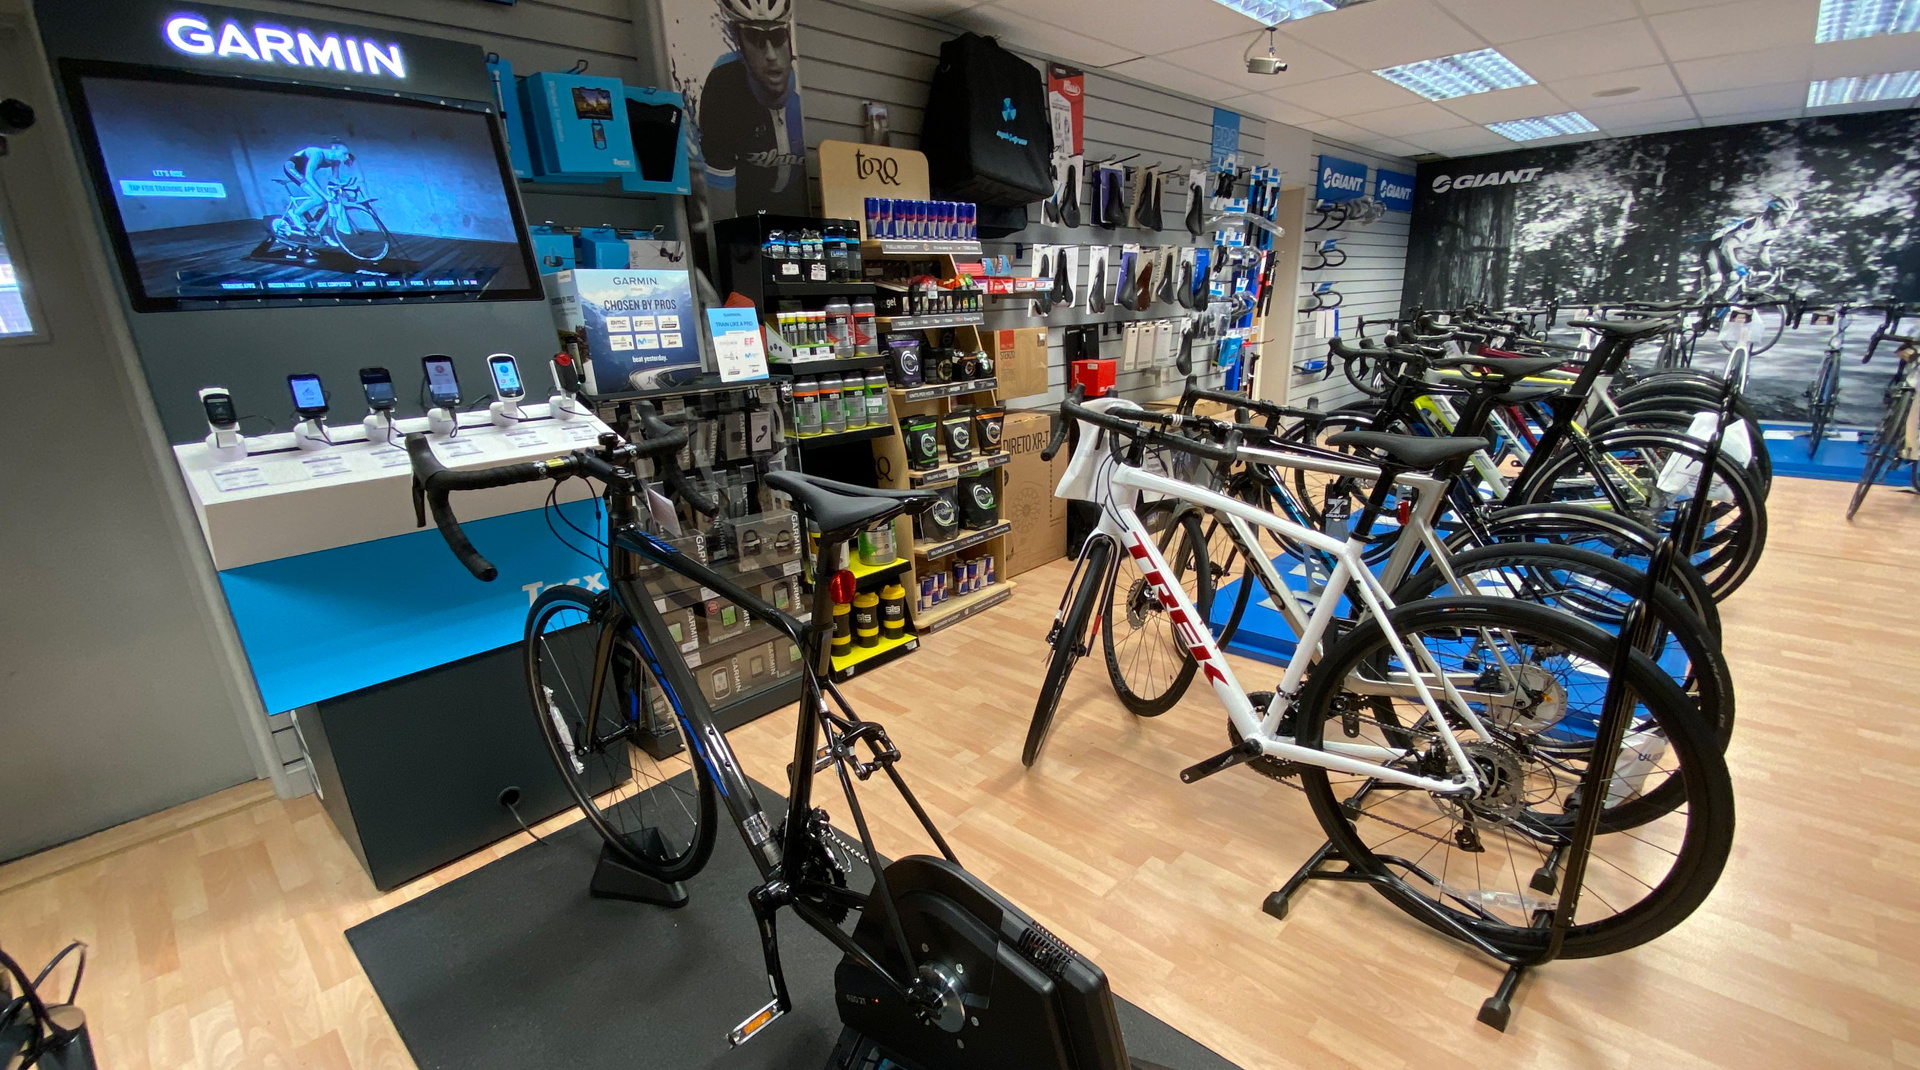 Garmin Tacx in-store cycling experience